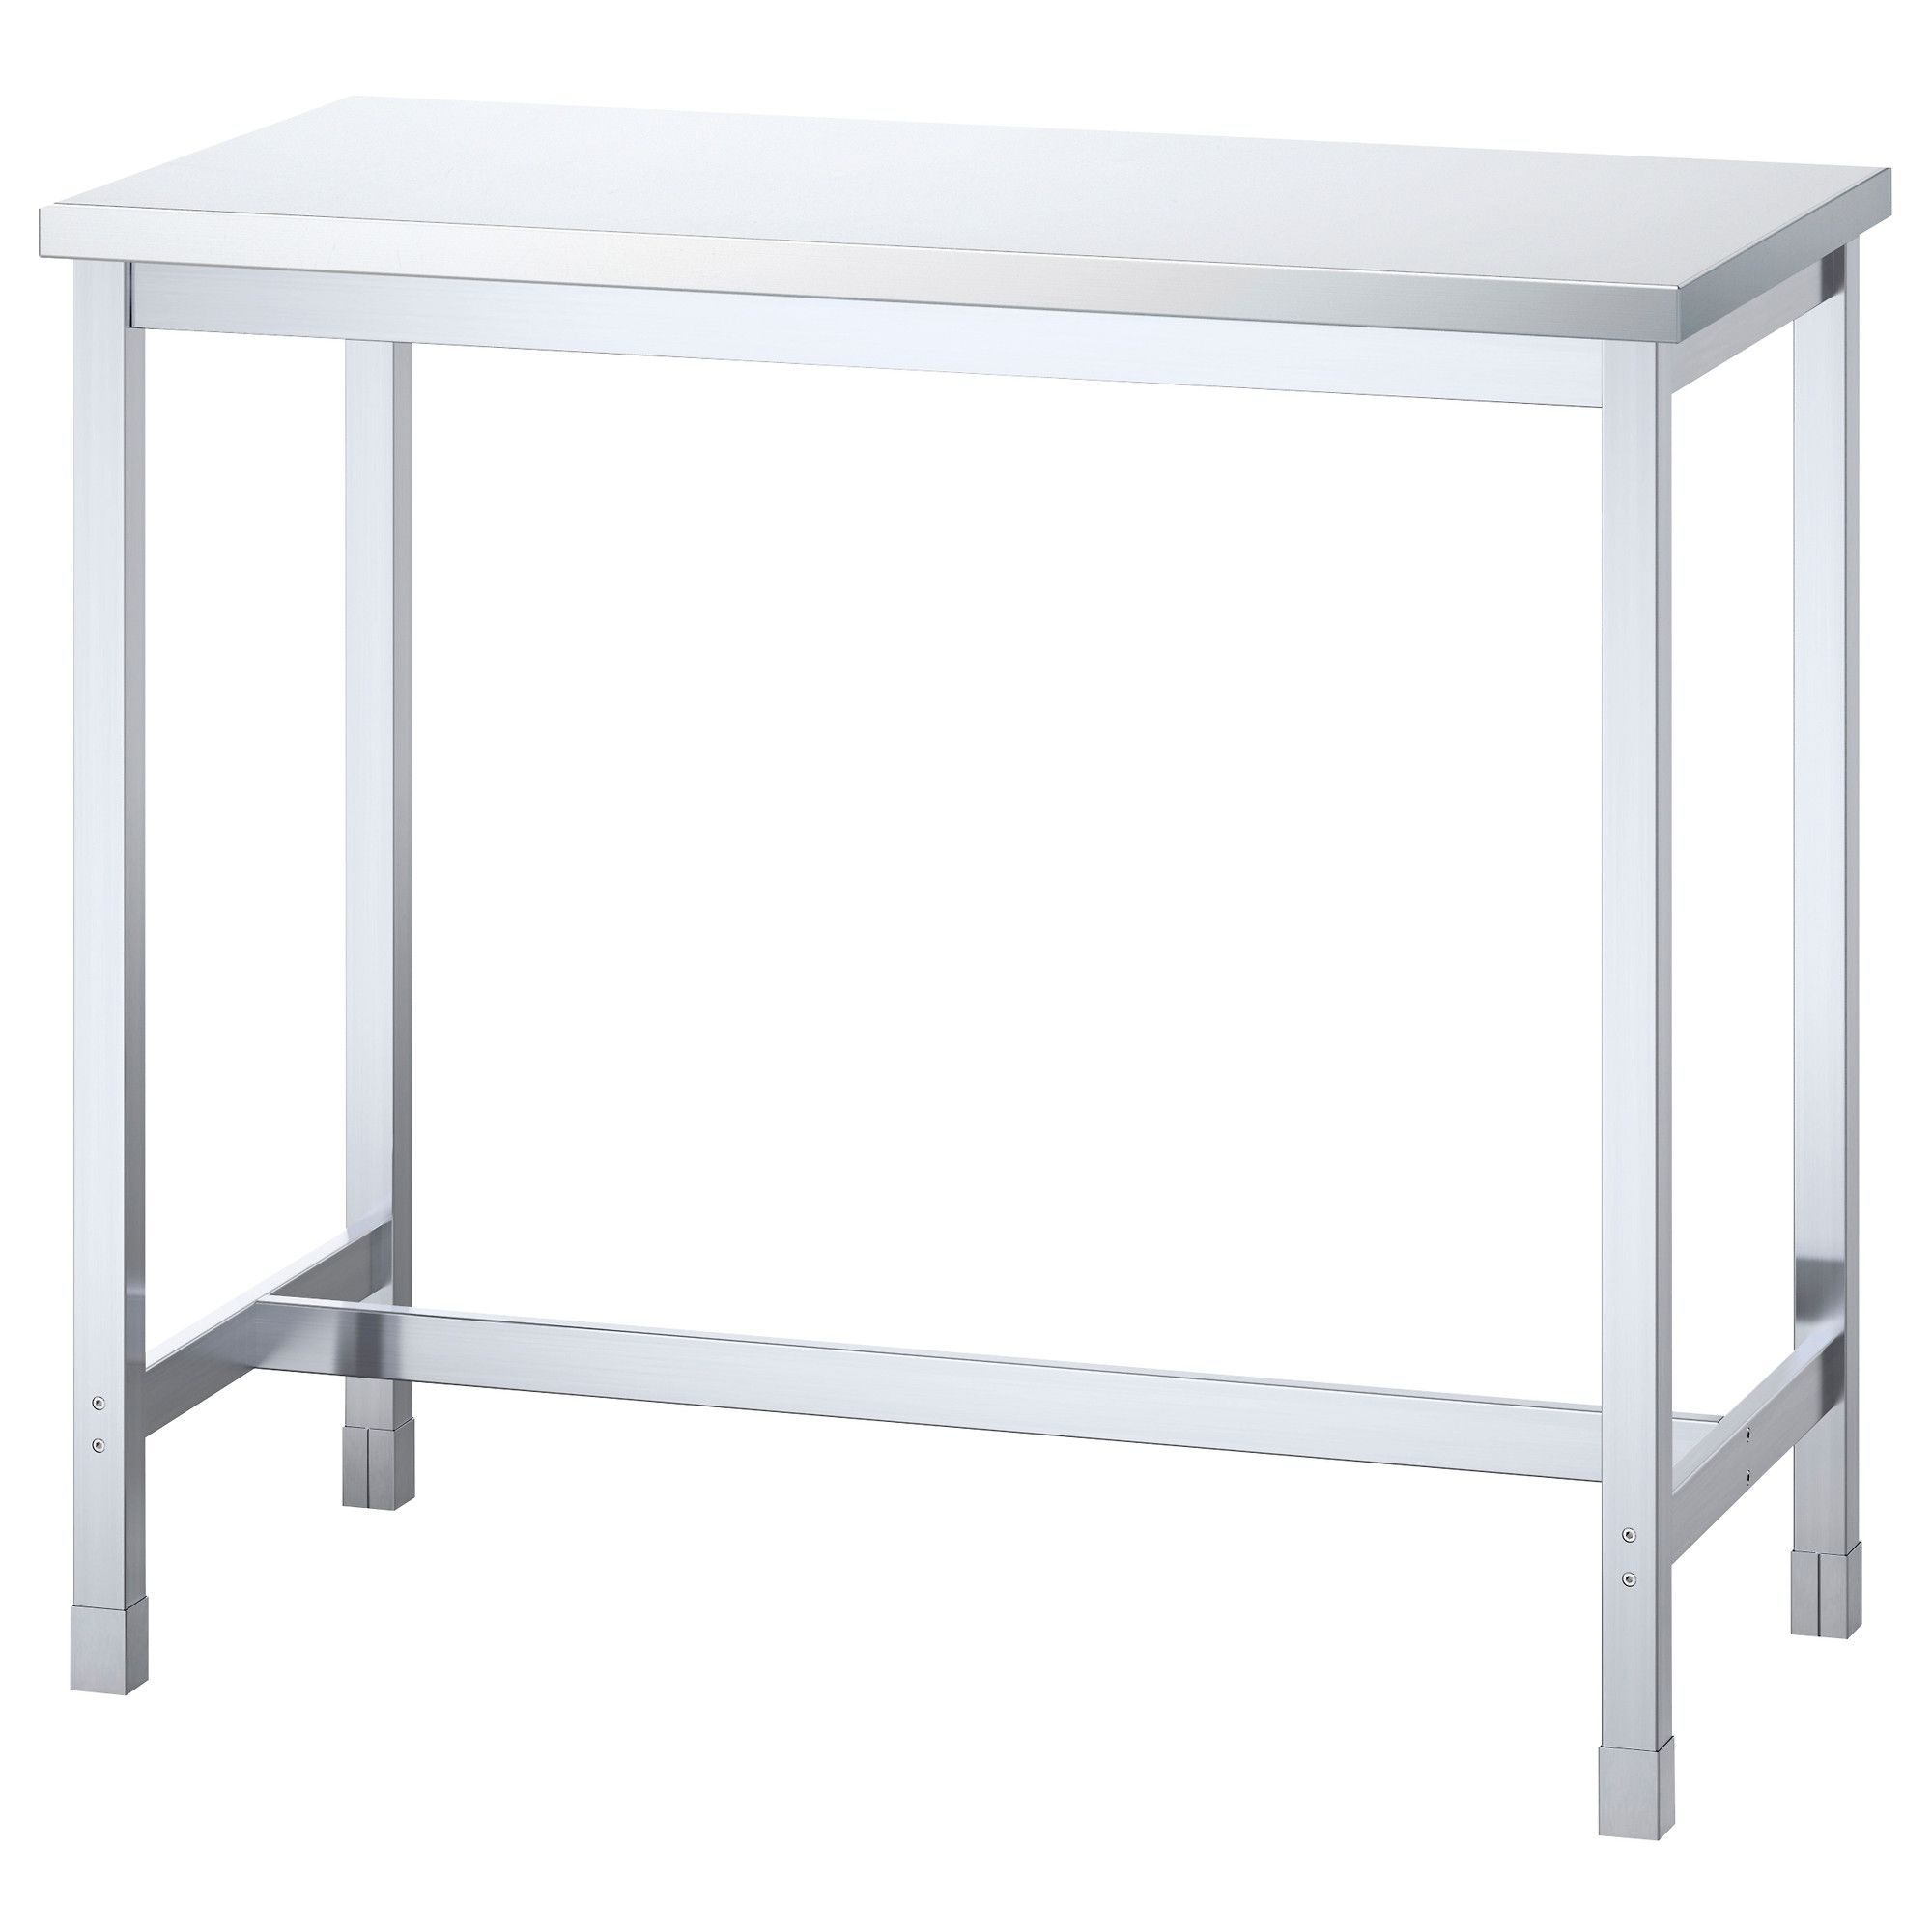 Perfect utby bar table stainless steel ikea for danus desk for Table chaise ikea